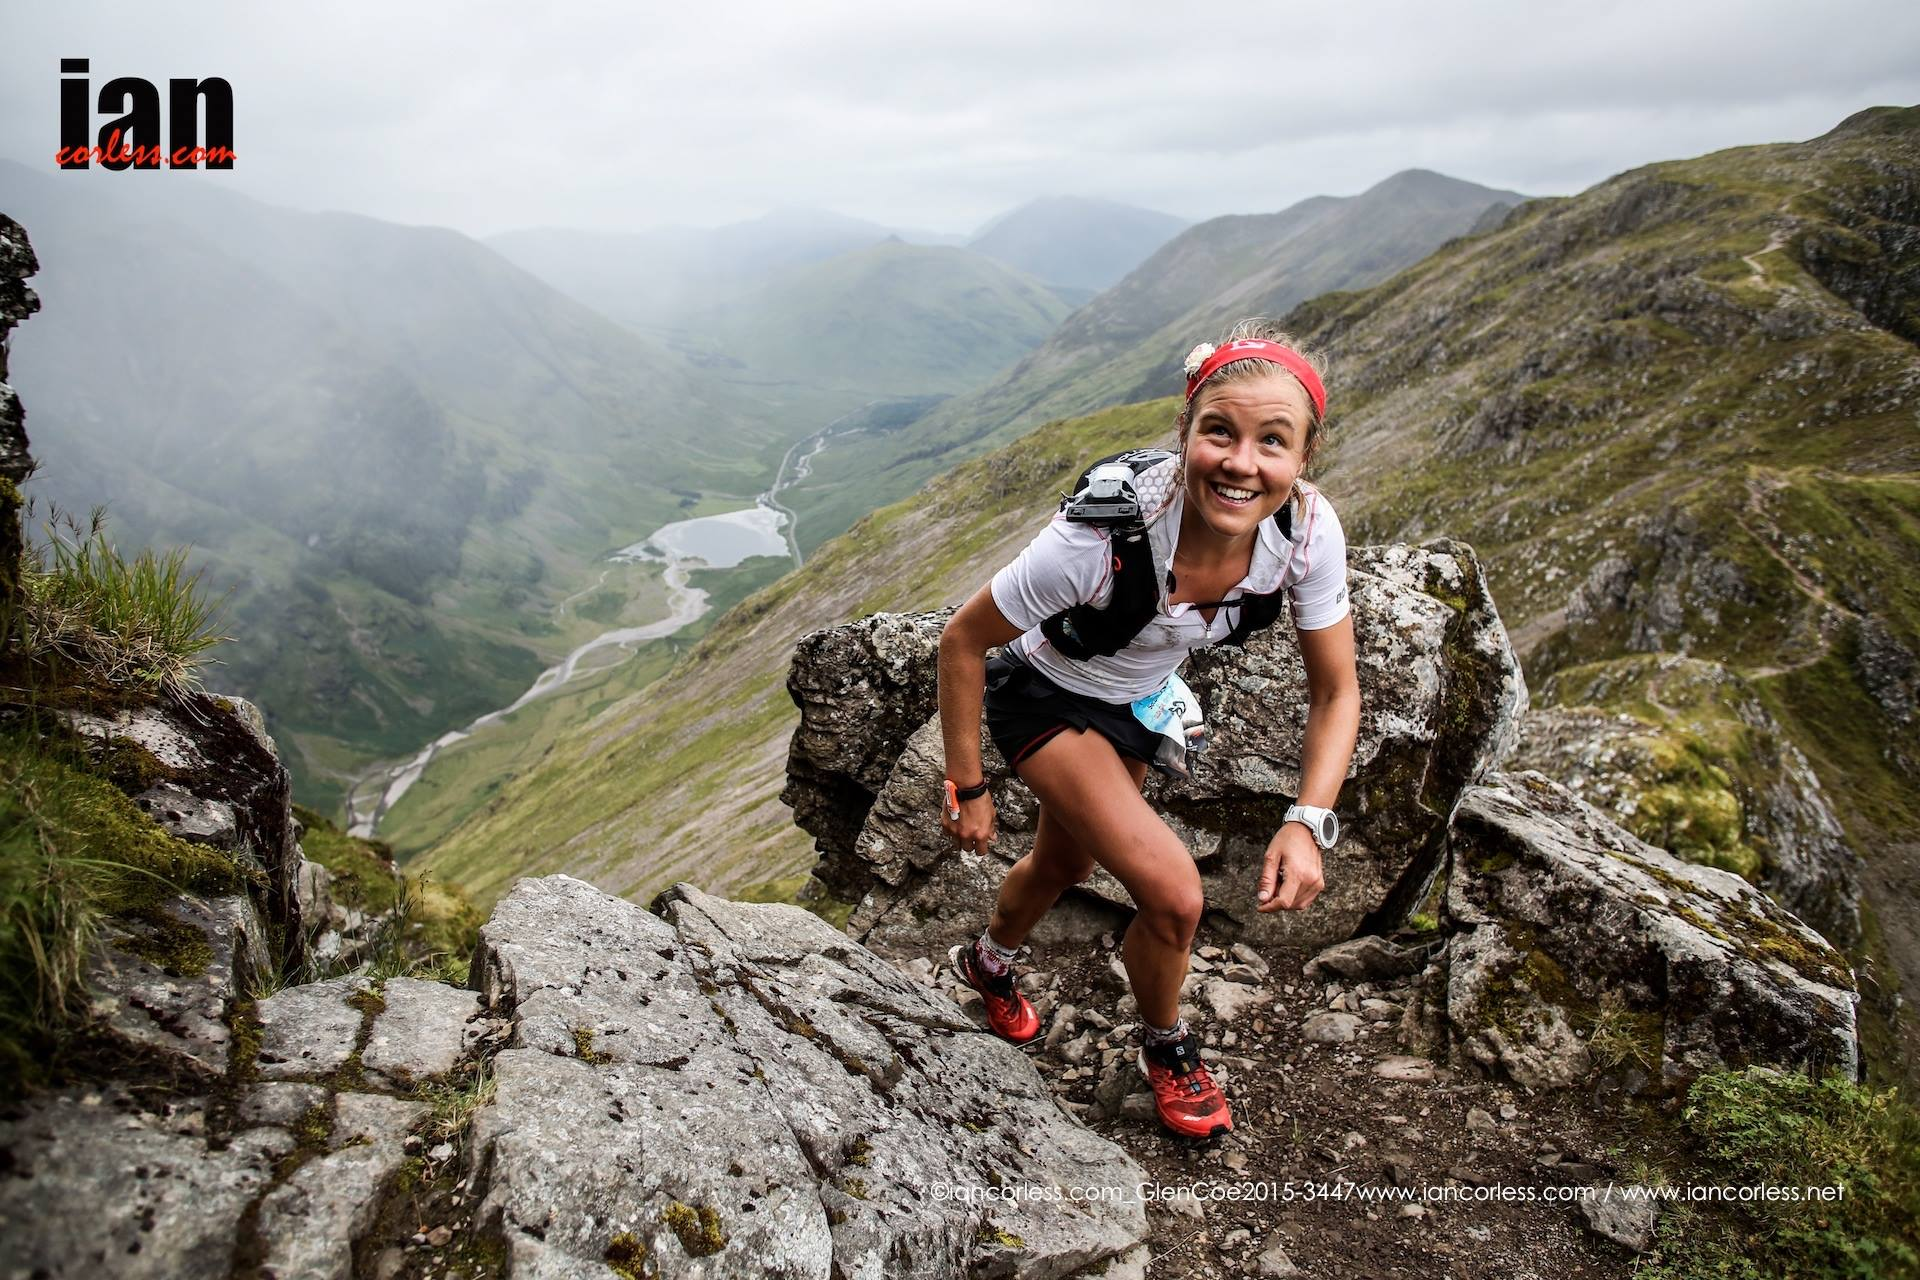 Skyrunning World Champion, Emelie Forsberg clearly enjoying herself on route to winning the 2015 race © iancorless.com